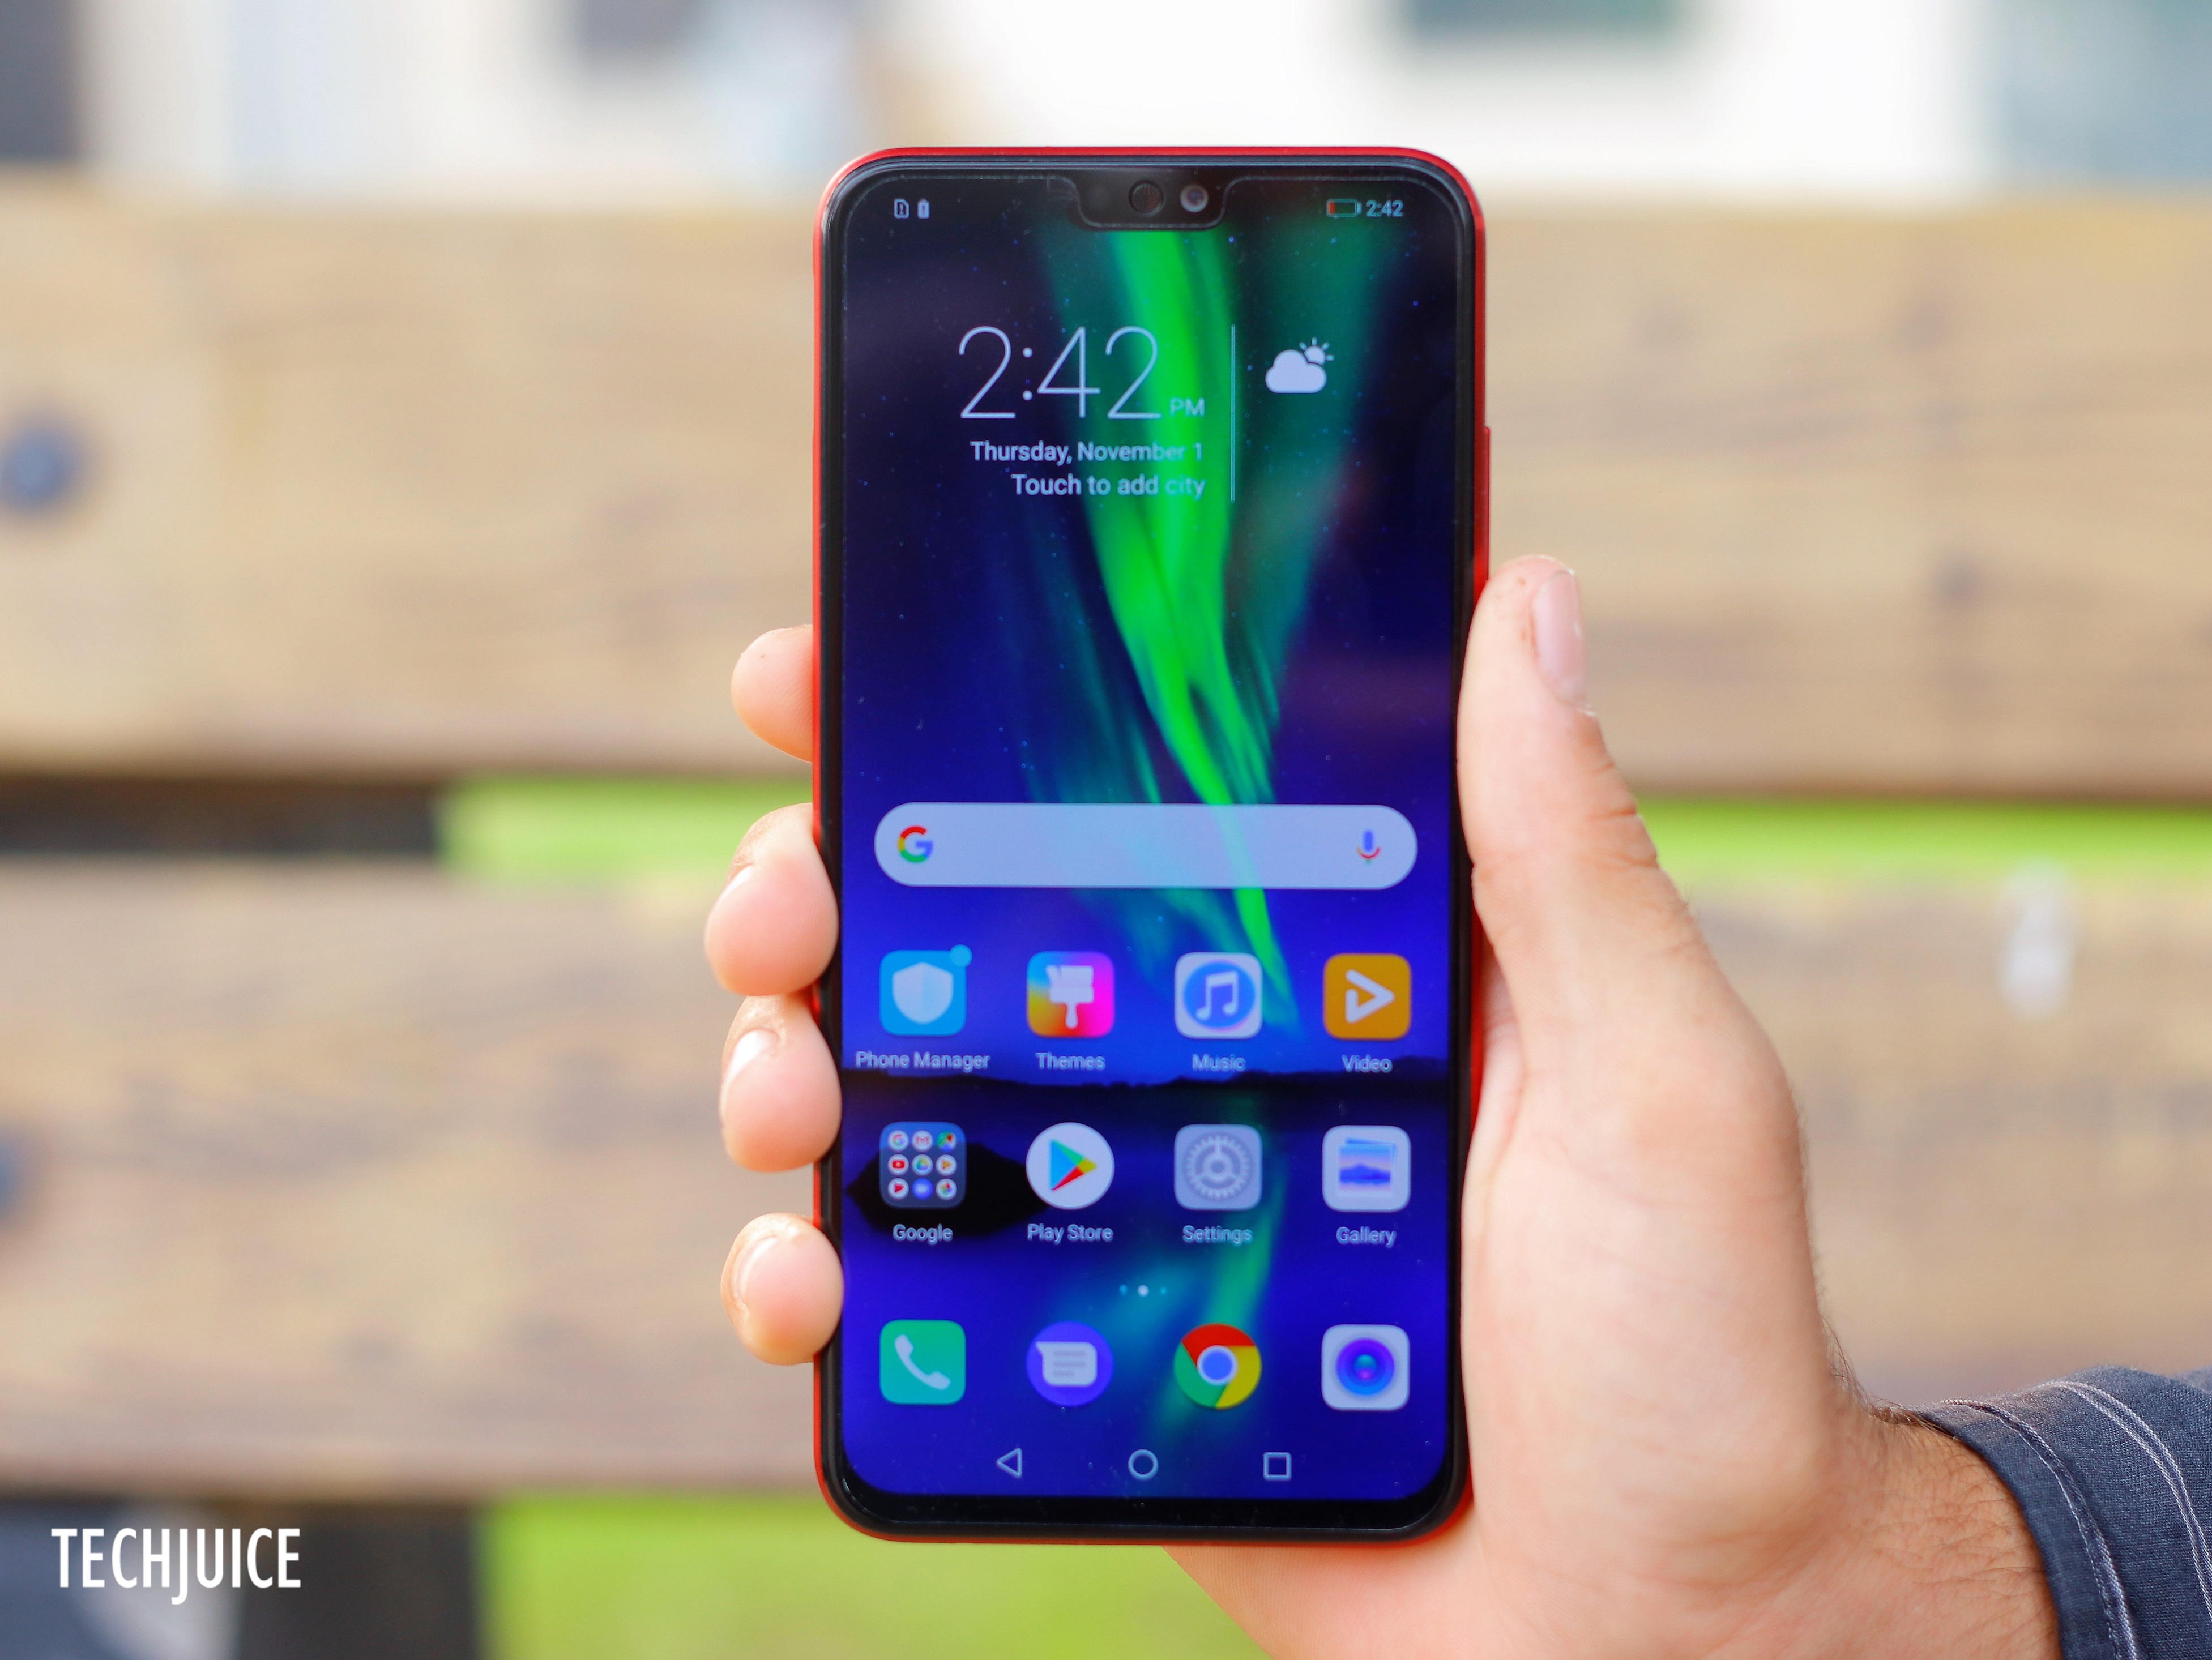 Huawei Honor 8X review: A Jack of all trades